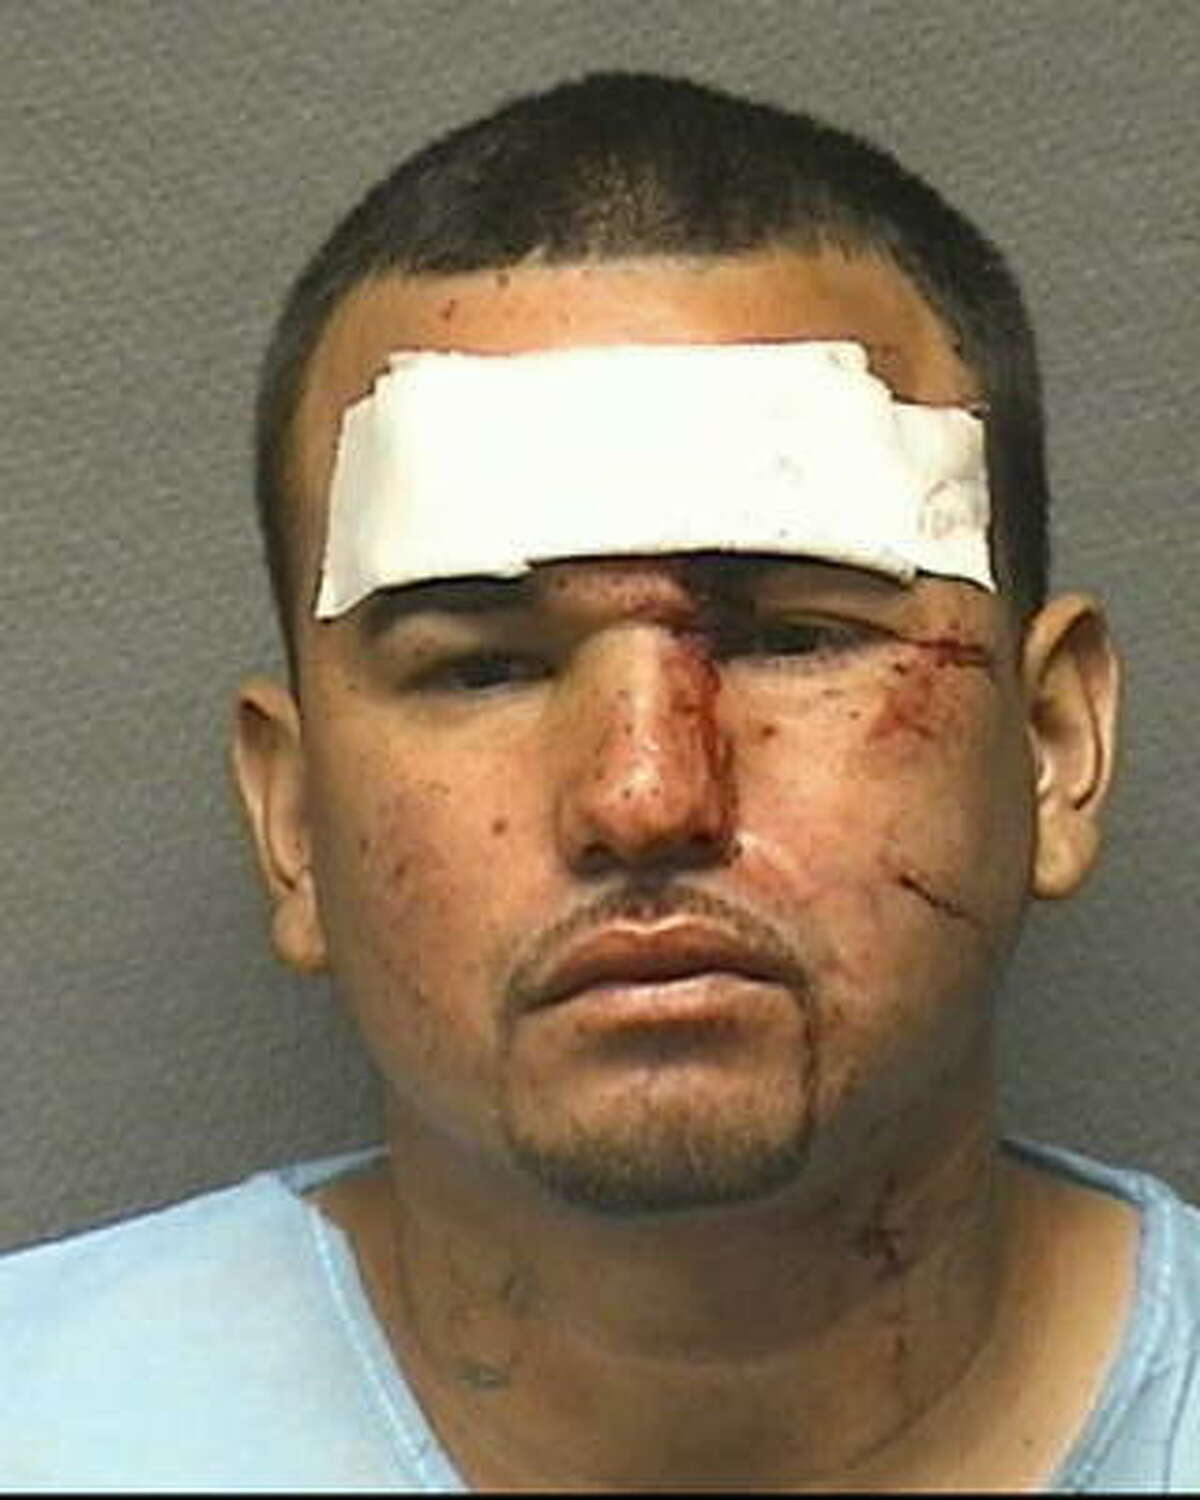 Johoan Rodriguez, 26, was jailed without bail.